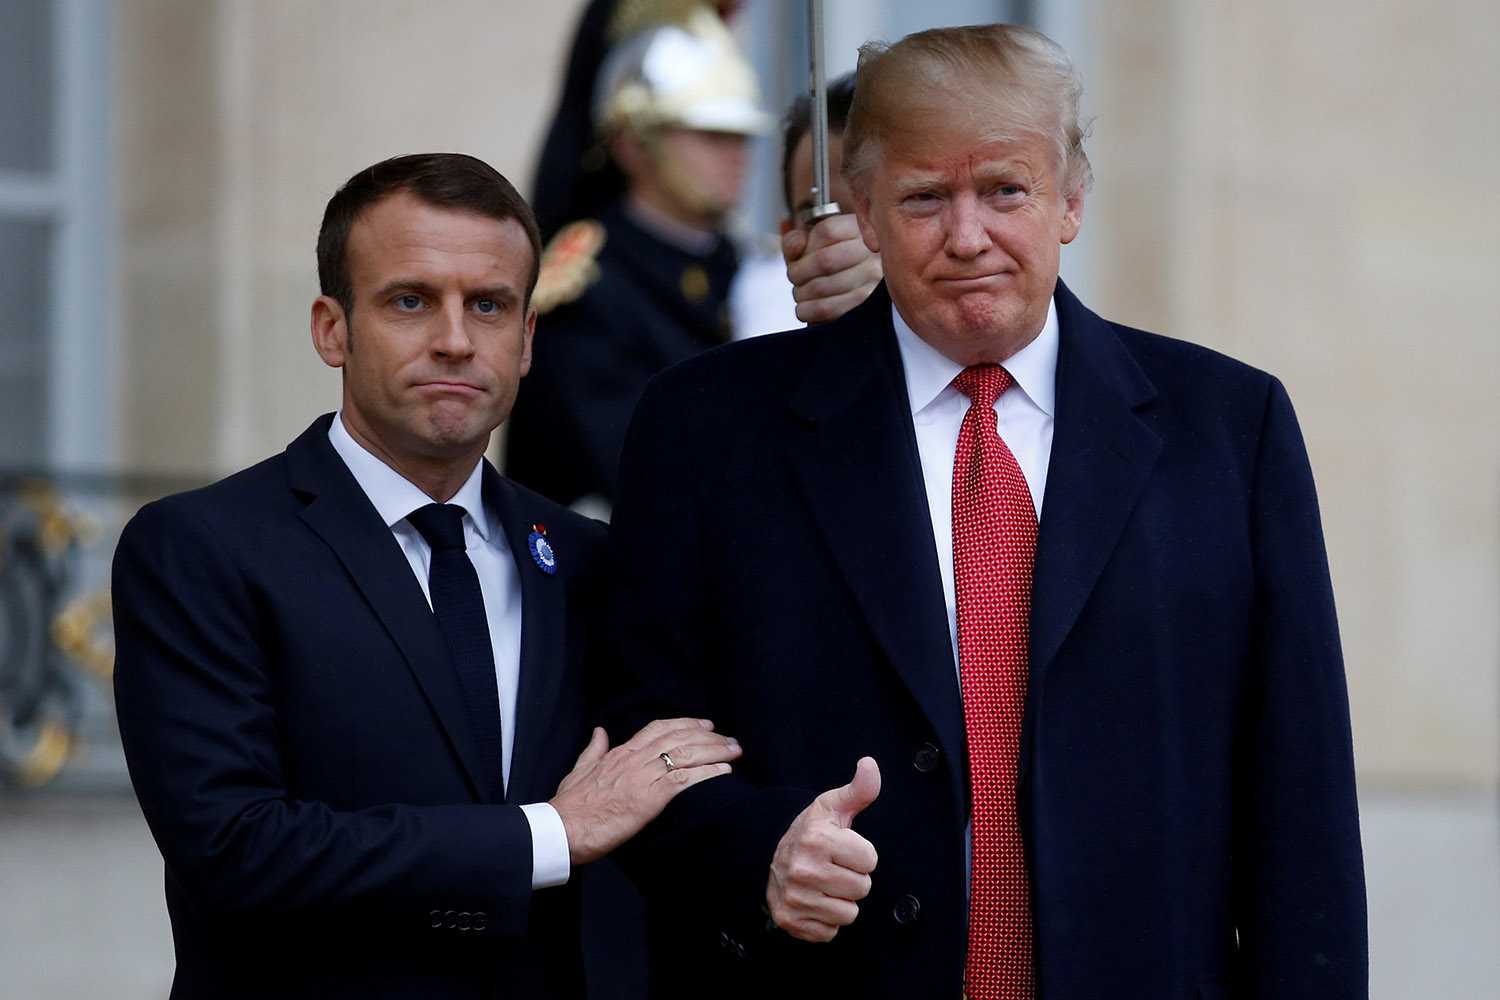 French President Emmanuel Macron welcomes U.S. President Donald Trump at the Elysee Palace on the eve of the commemoration ceremony for Armistice Day, 100 years after the end of the First World War, in Paris, France, November 10, 2018. REUTERS/Vincent Kessler